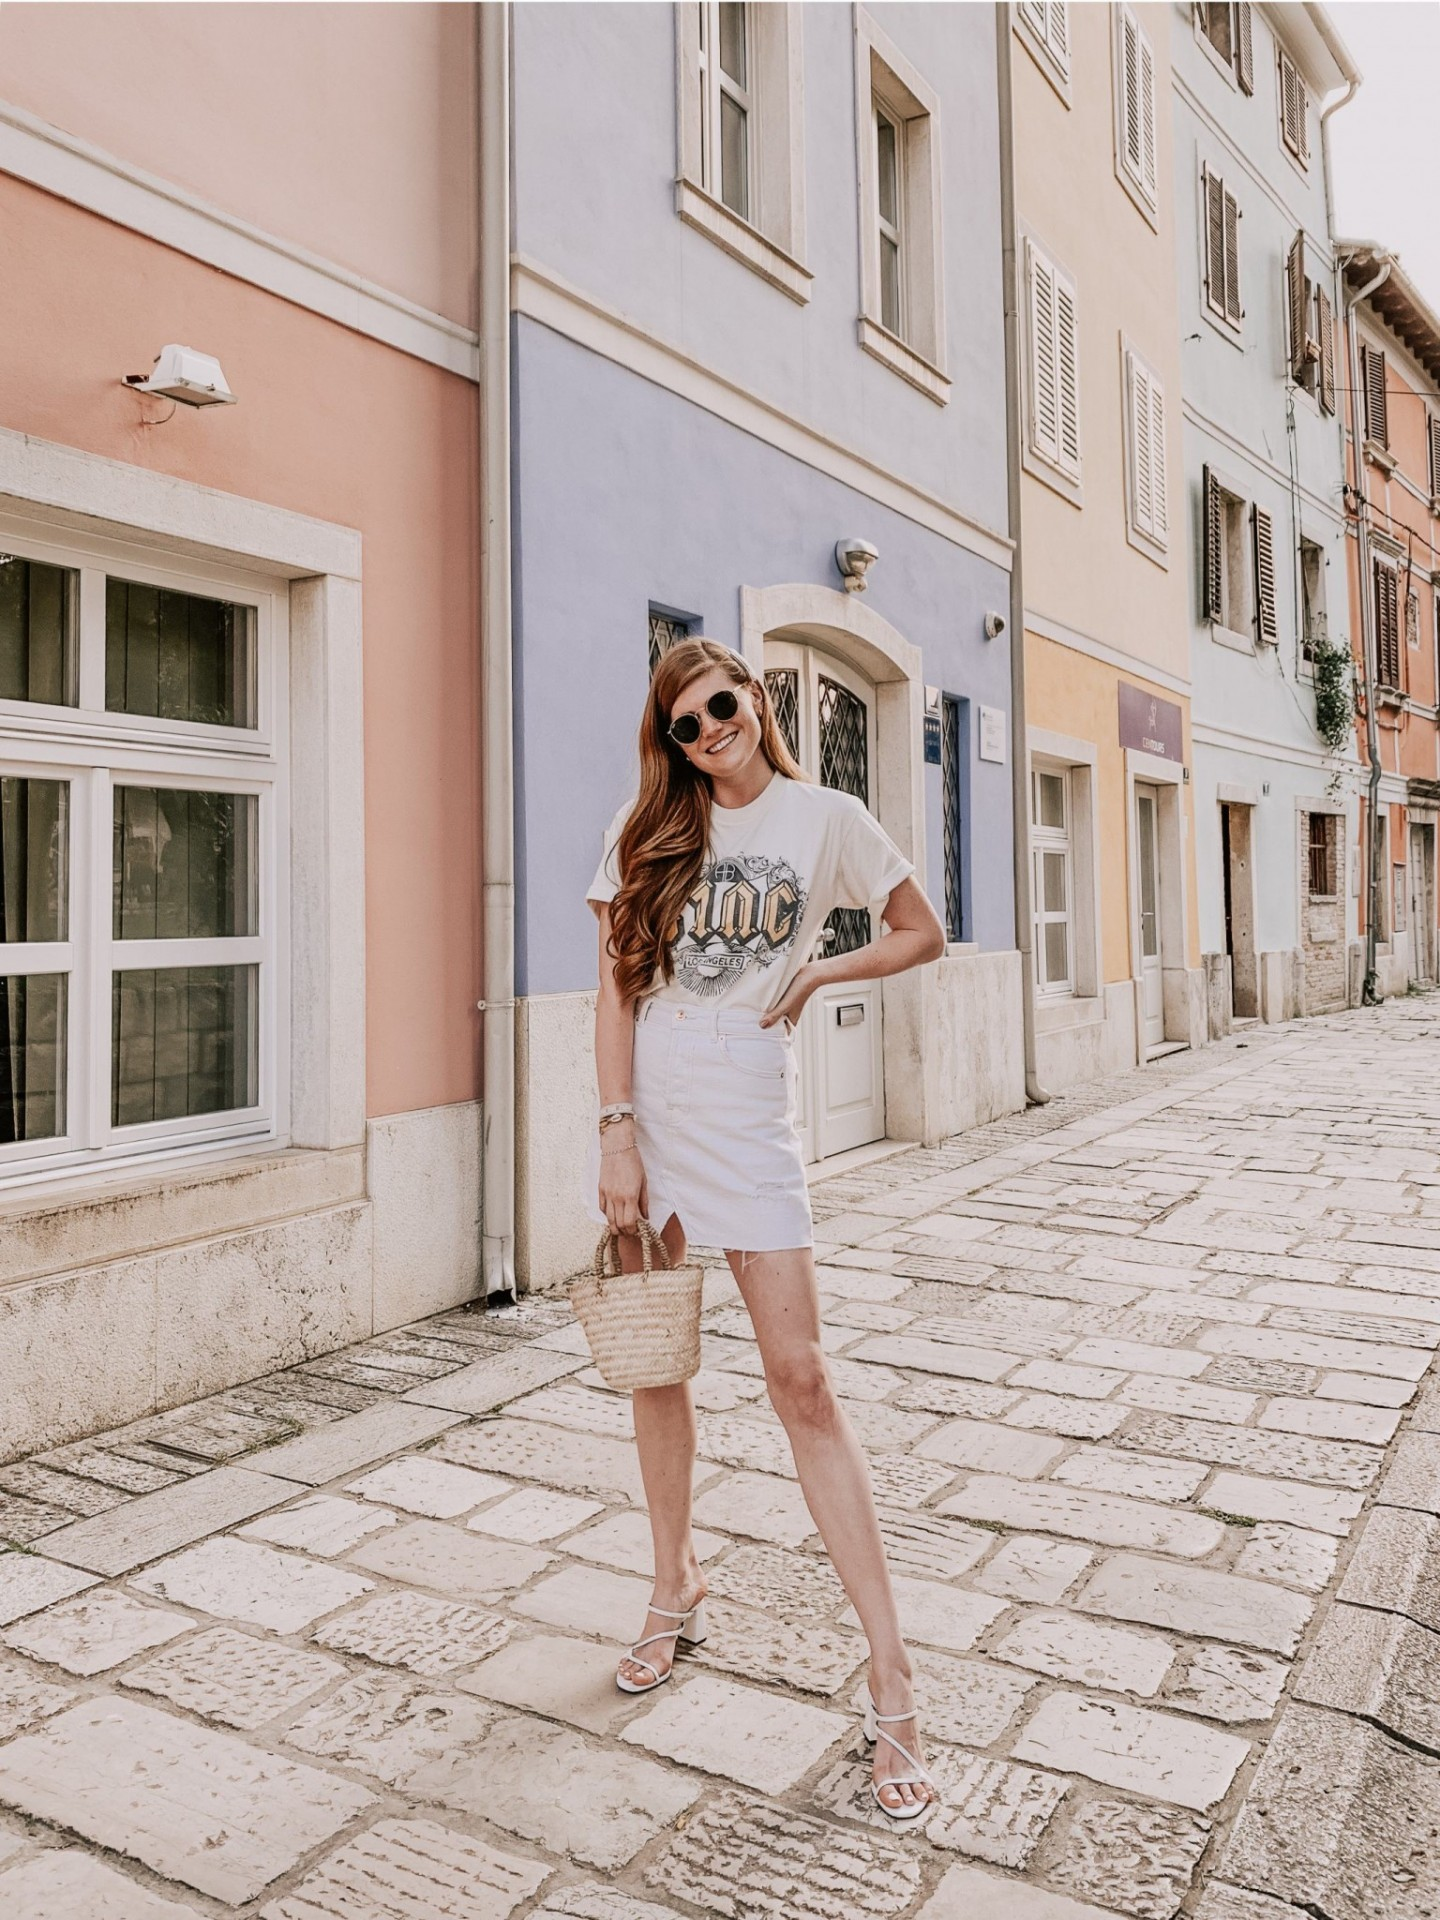 Lifestyle blogger Mollie Moore shares an Istria, Croatia travel guide. | Istria, Croatia Travel guide by popular London fashion and travel blogger Mollie Moore: image of a woman standing on a cobble stone street lined with pastel colored buildings in Istria, Croatia.